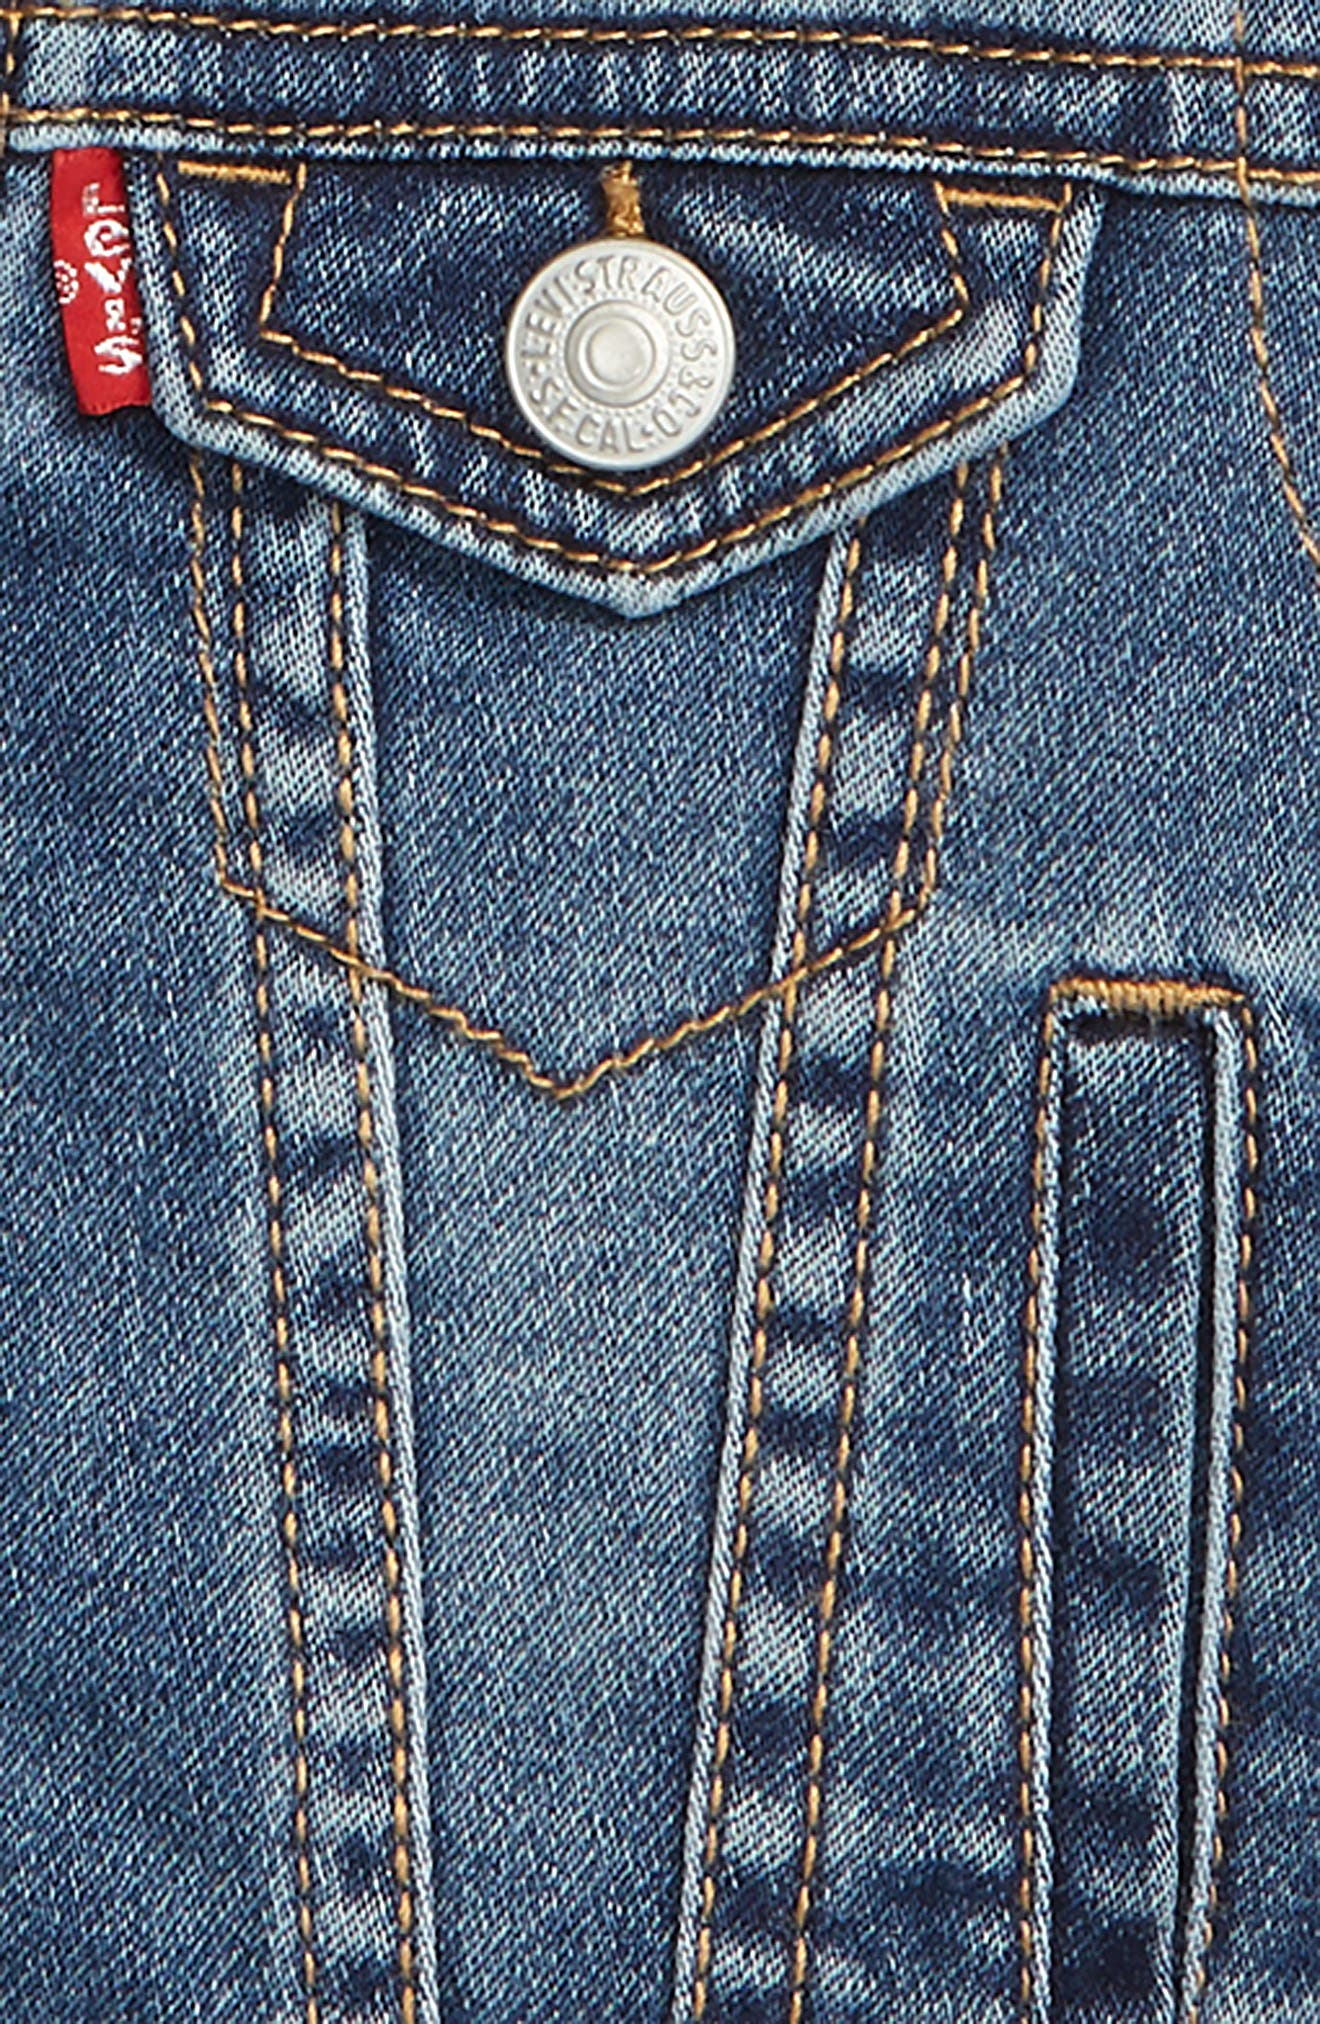 LEVI'S<SUP>®</SUP>, Levi's<sup>®</sup> Indigo Hooded Trucker Jacket, Alternate thumbnail 2, color, 452